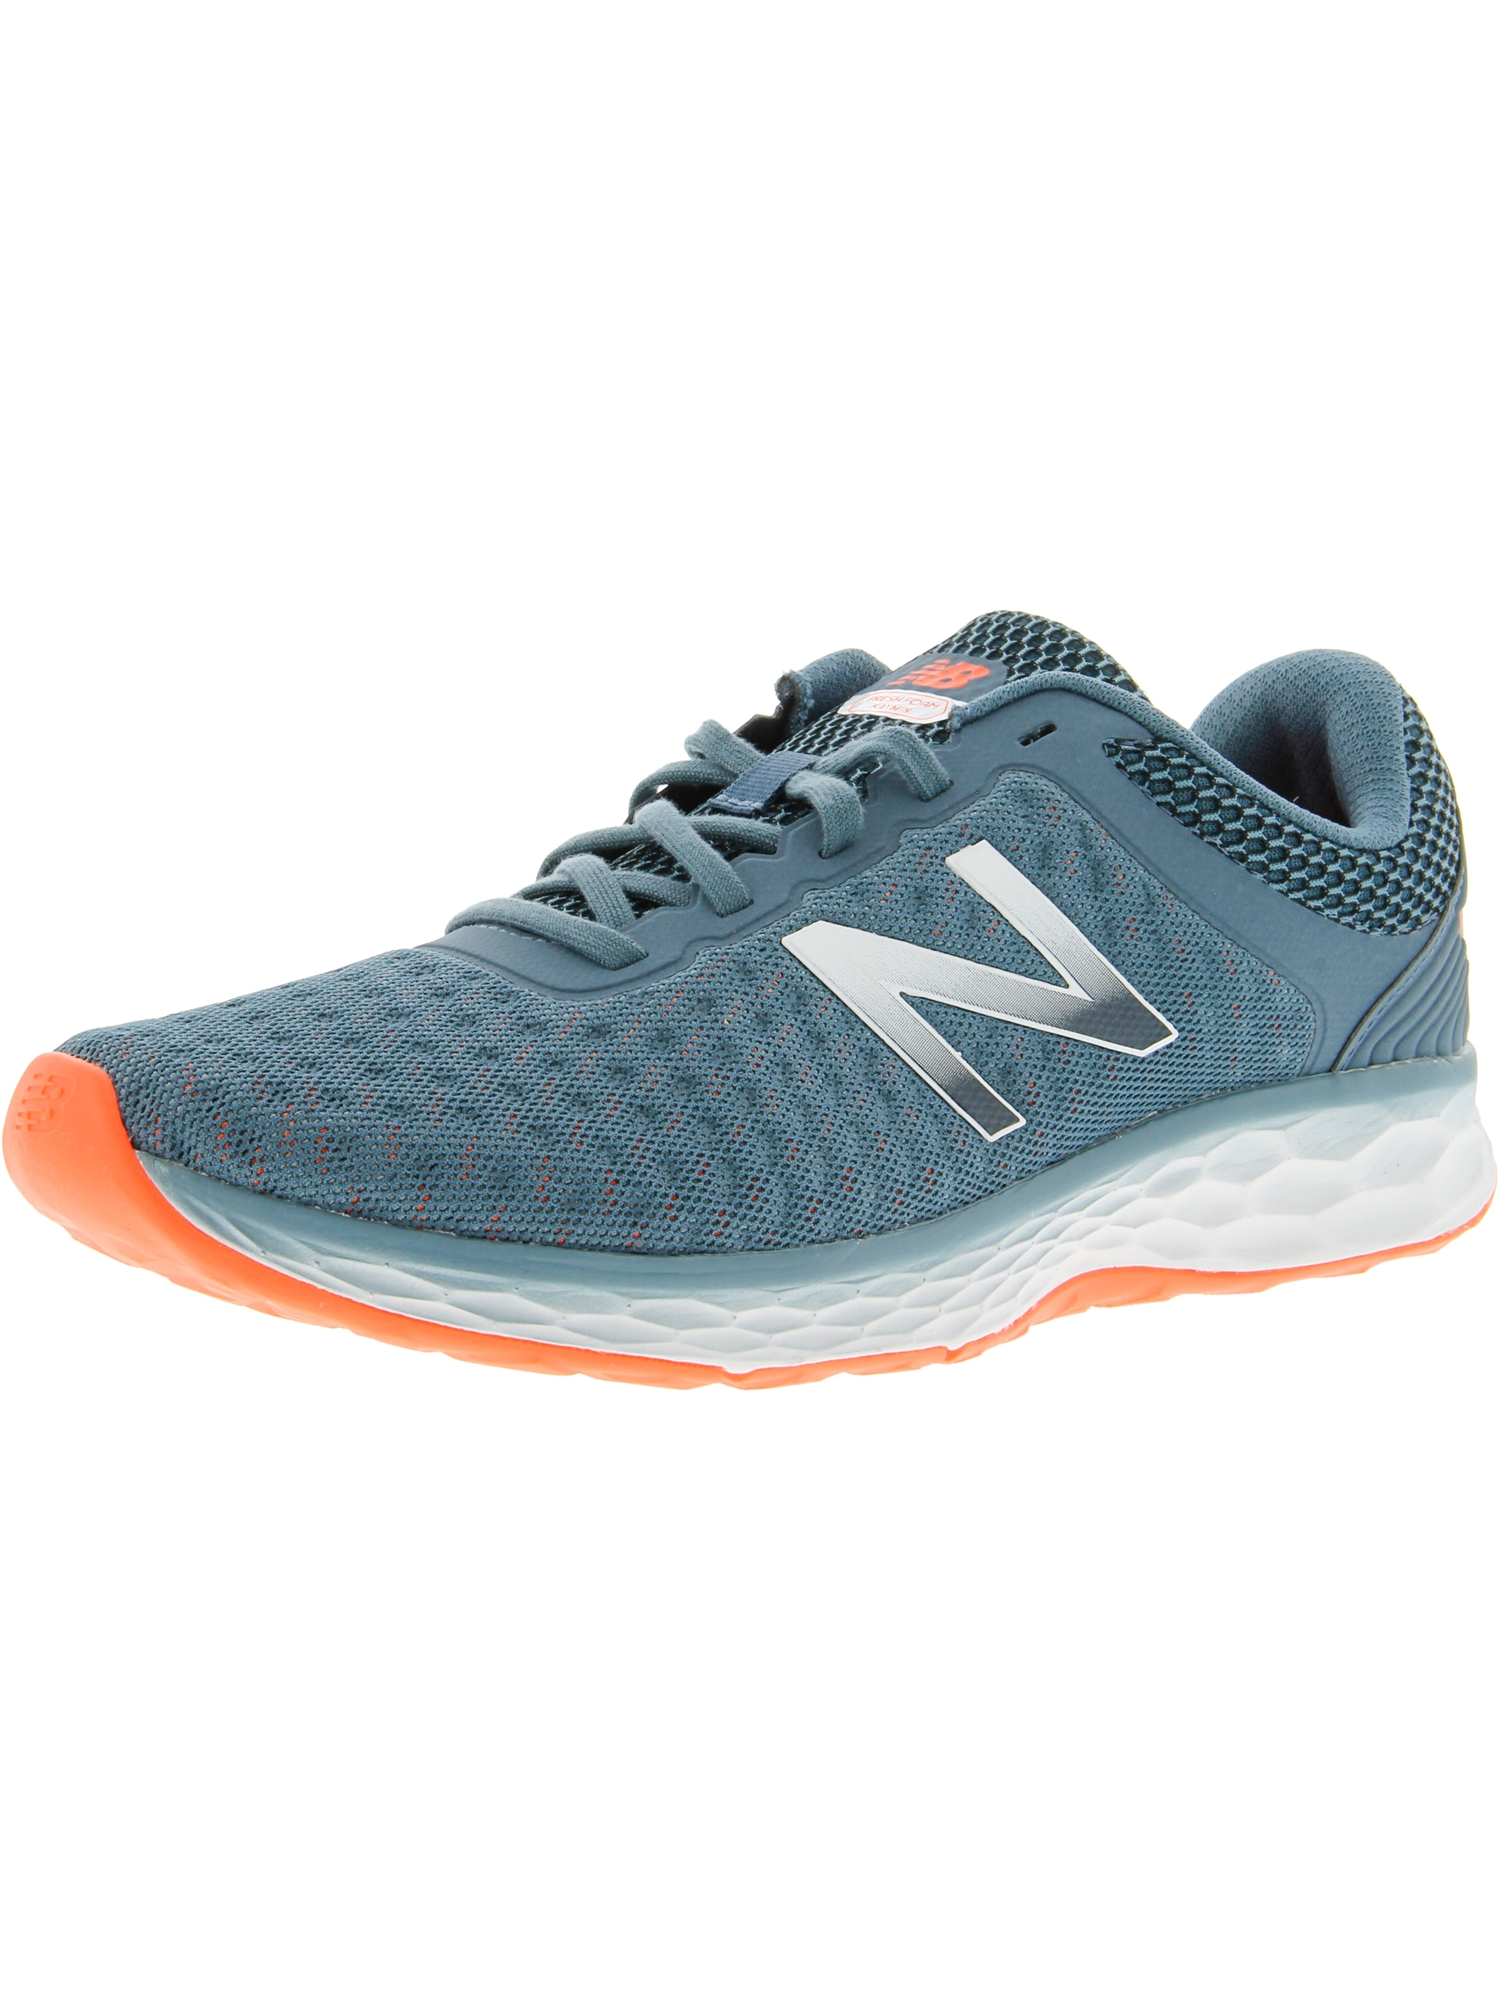 New Balance Women's Wkaym Rc1 Ankle-High Running Shoe - 10.5M